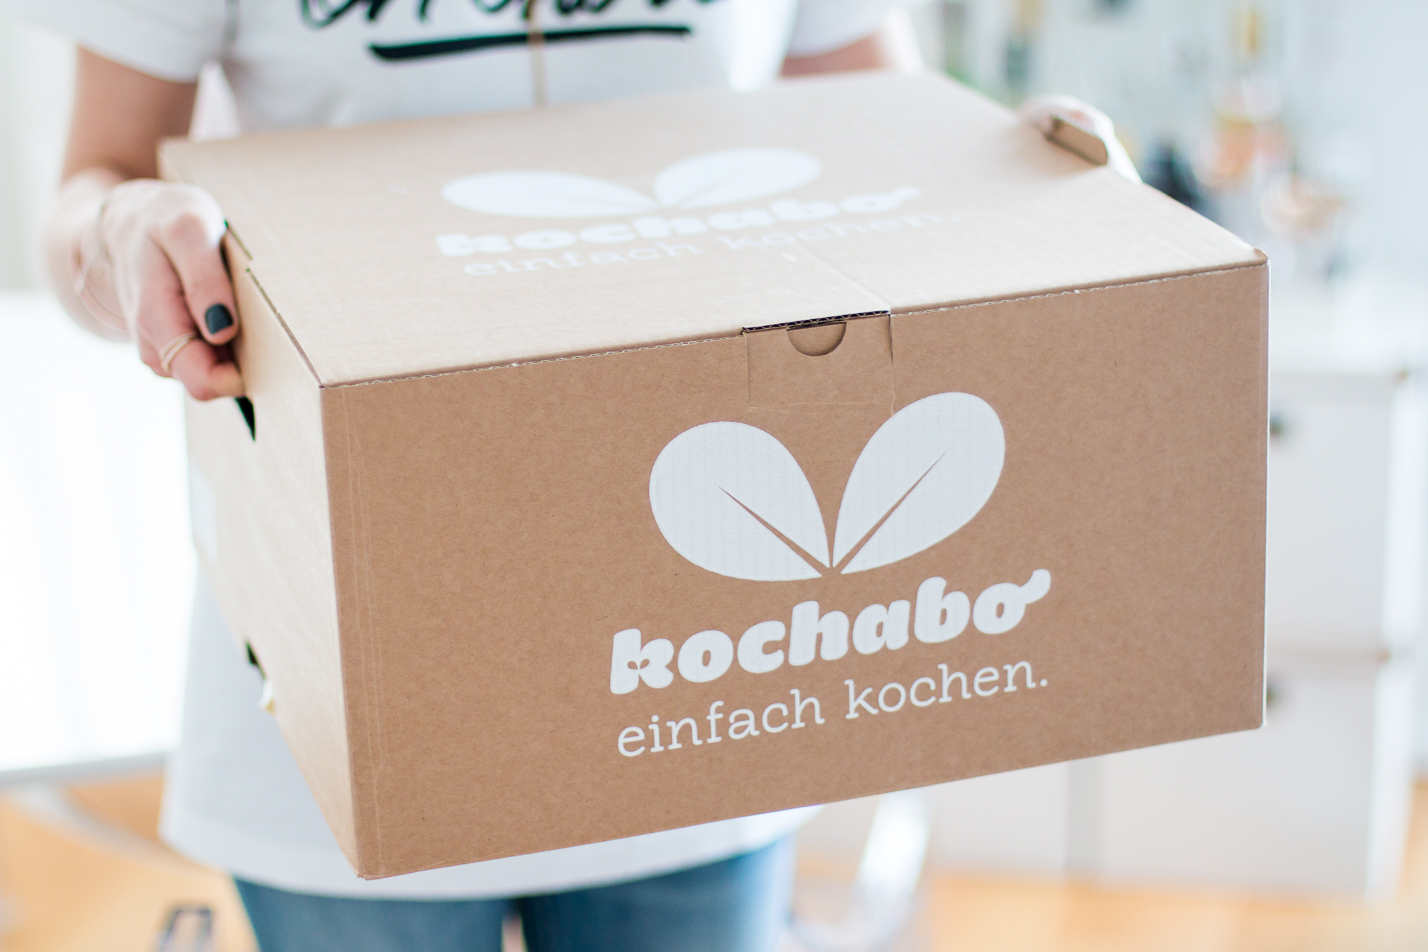 KochAbo.at Gesund & Fit Box Review | Love Daily Dose